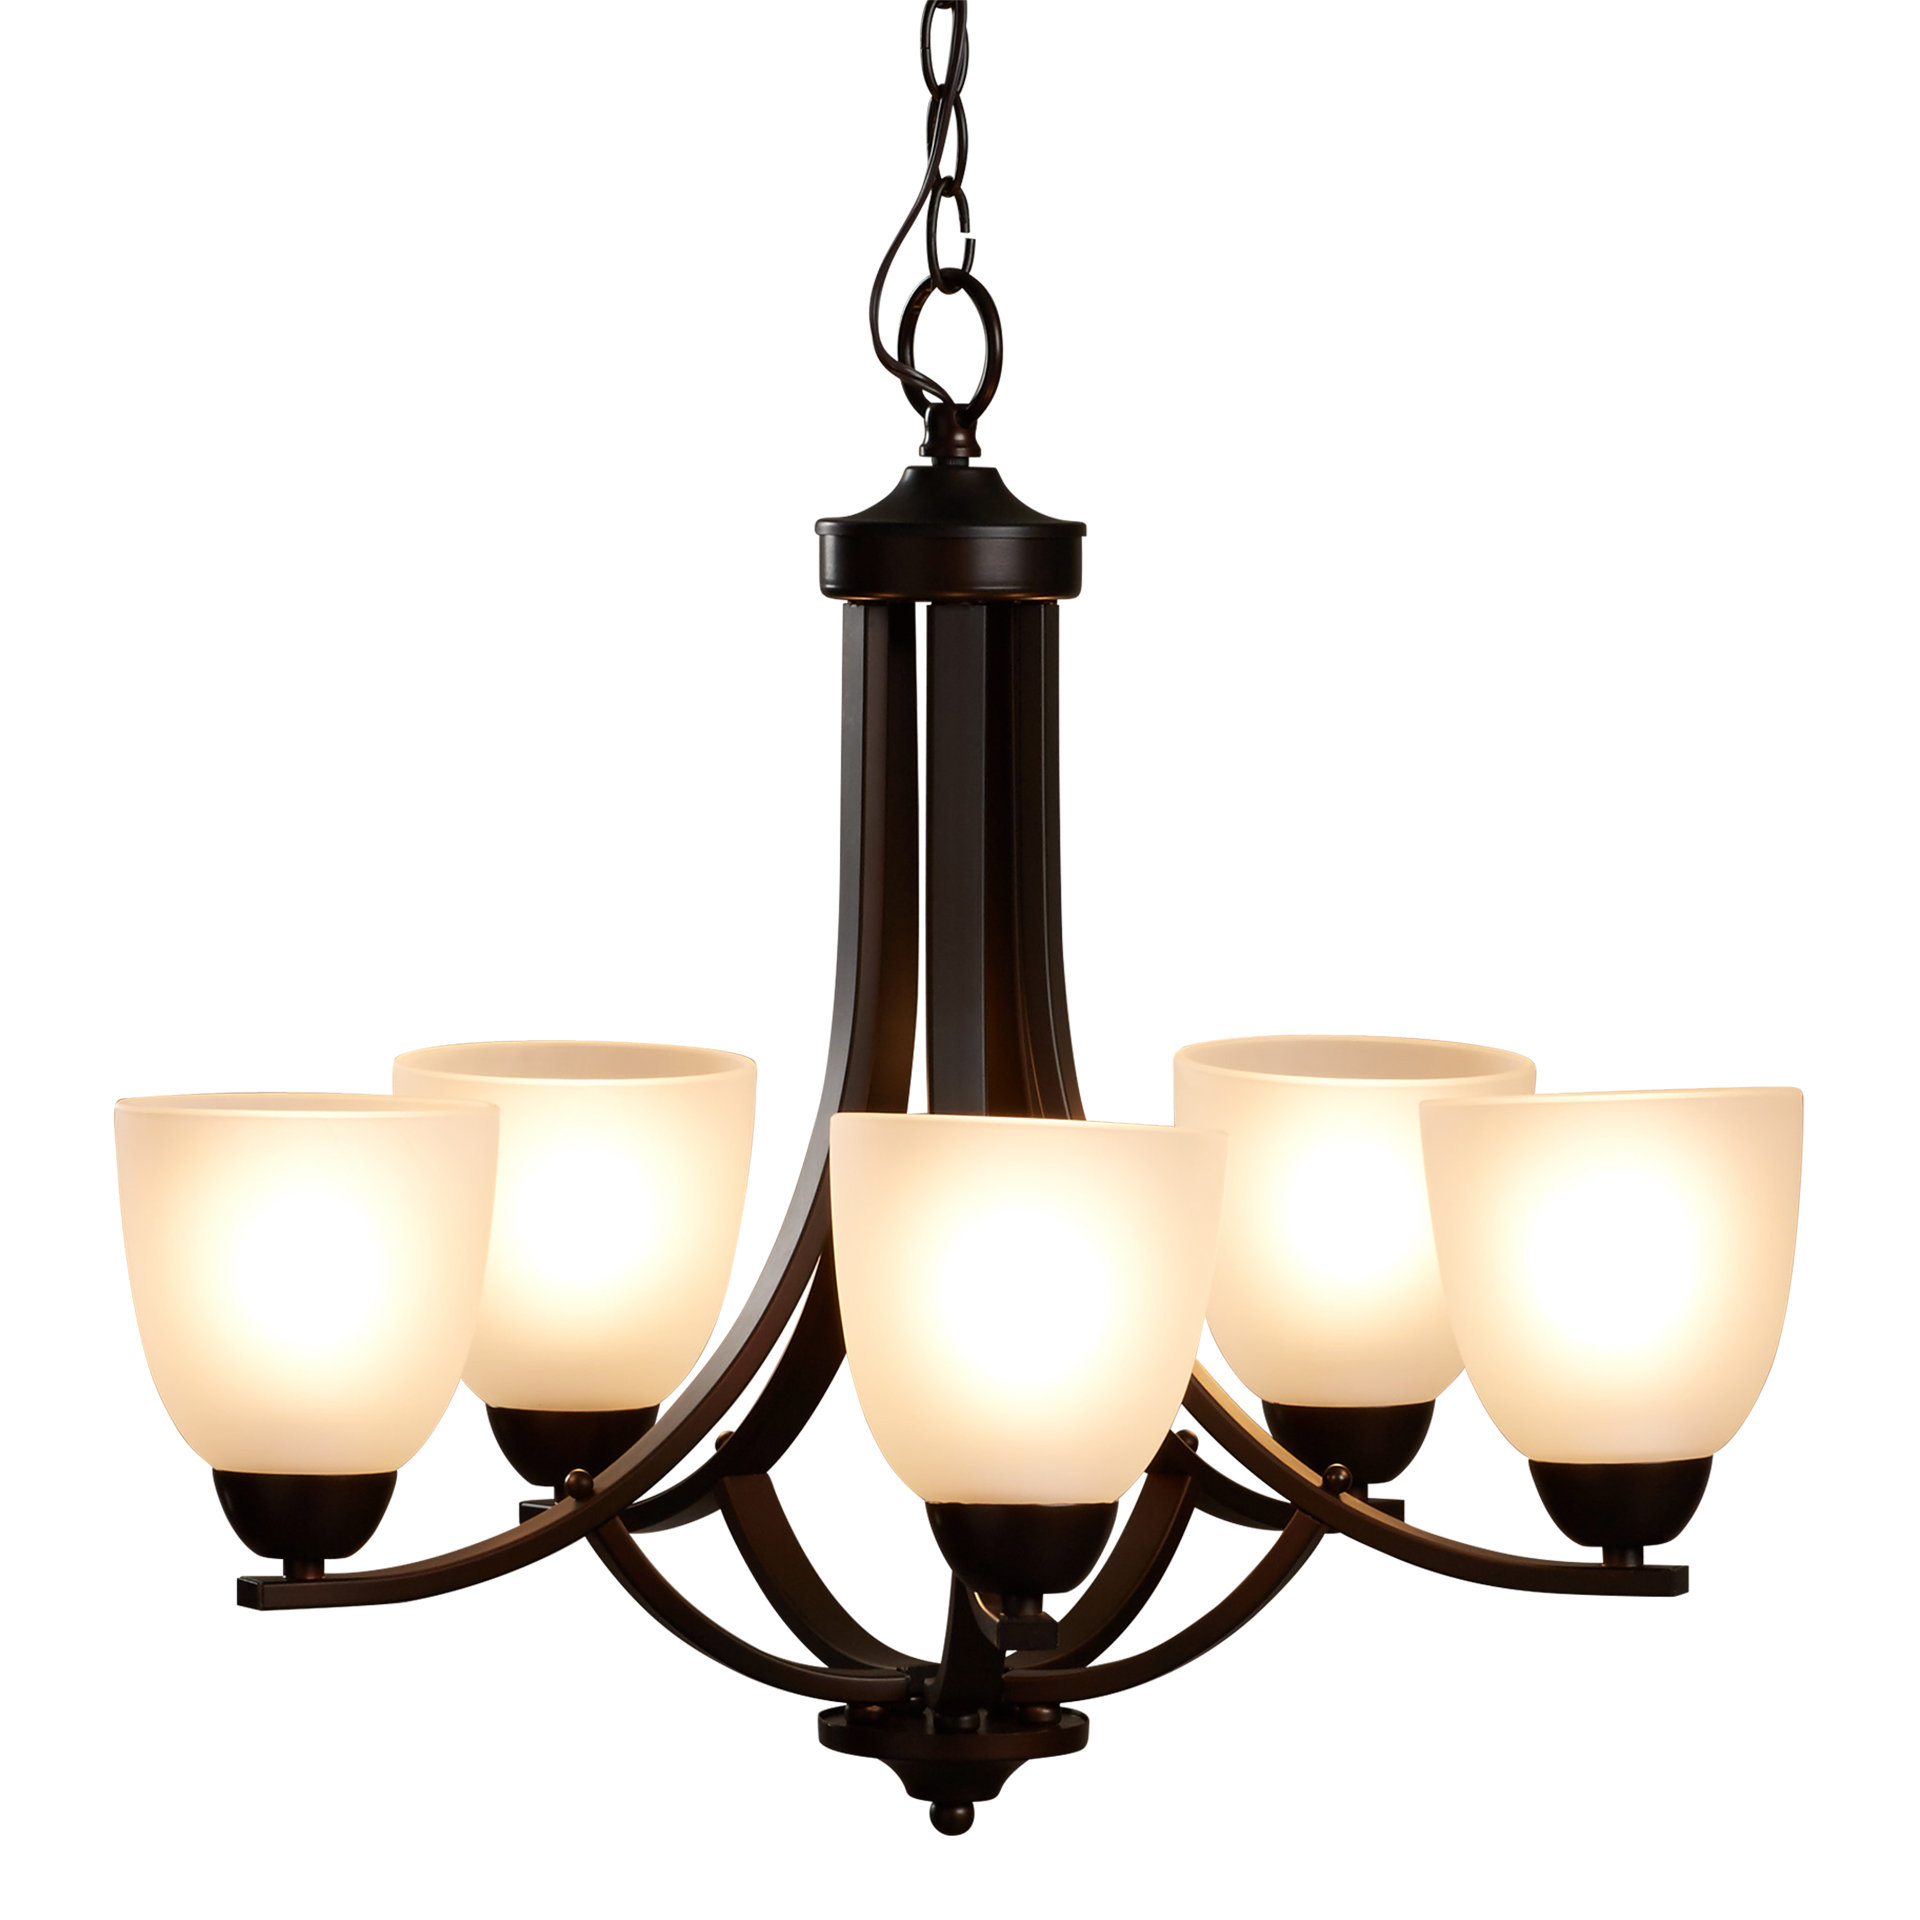 Hayden 5-Light Shaded Chandelier with Famous Suki 5-Light Shaded Chandeliers